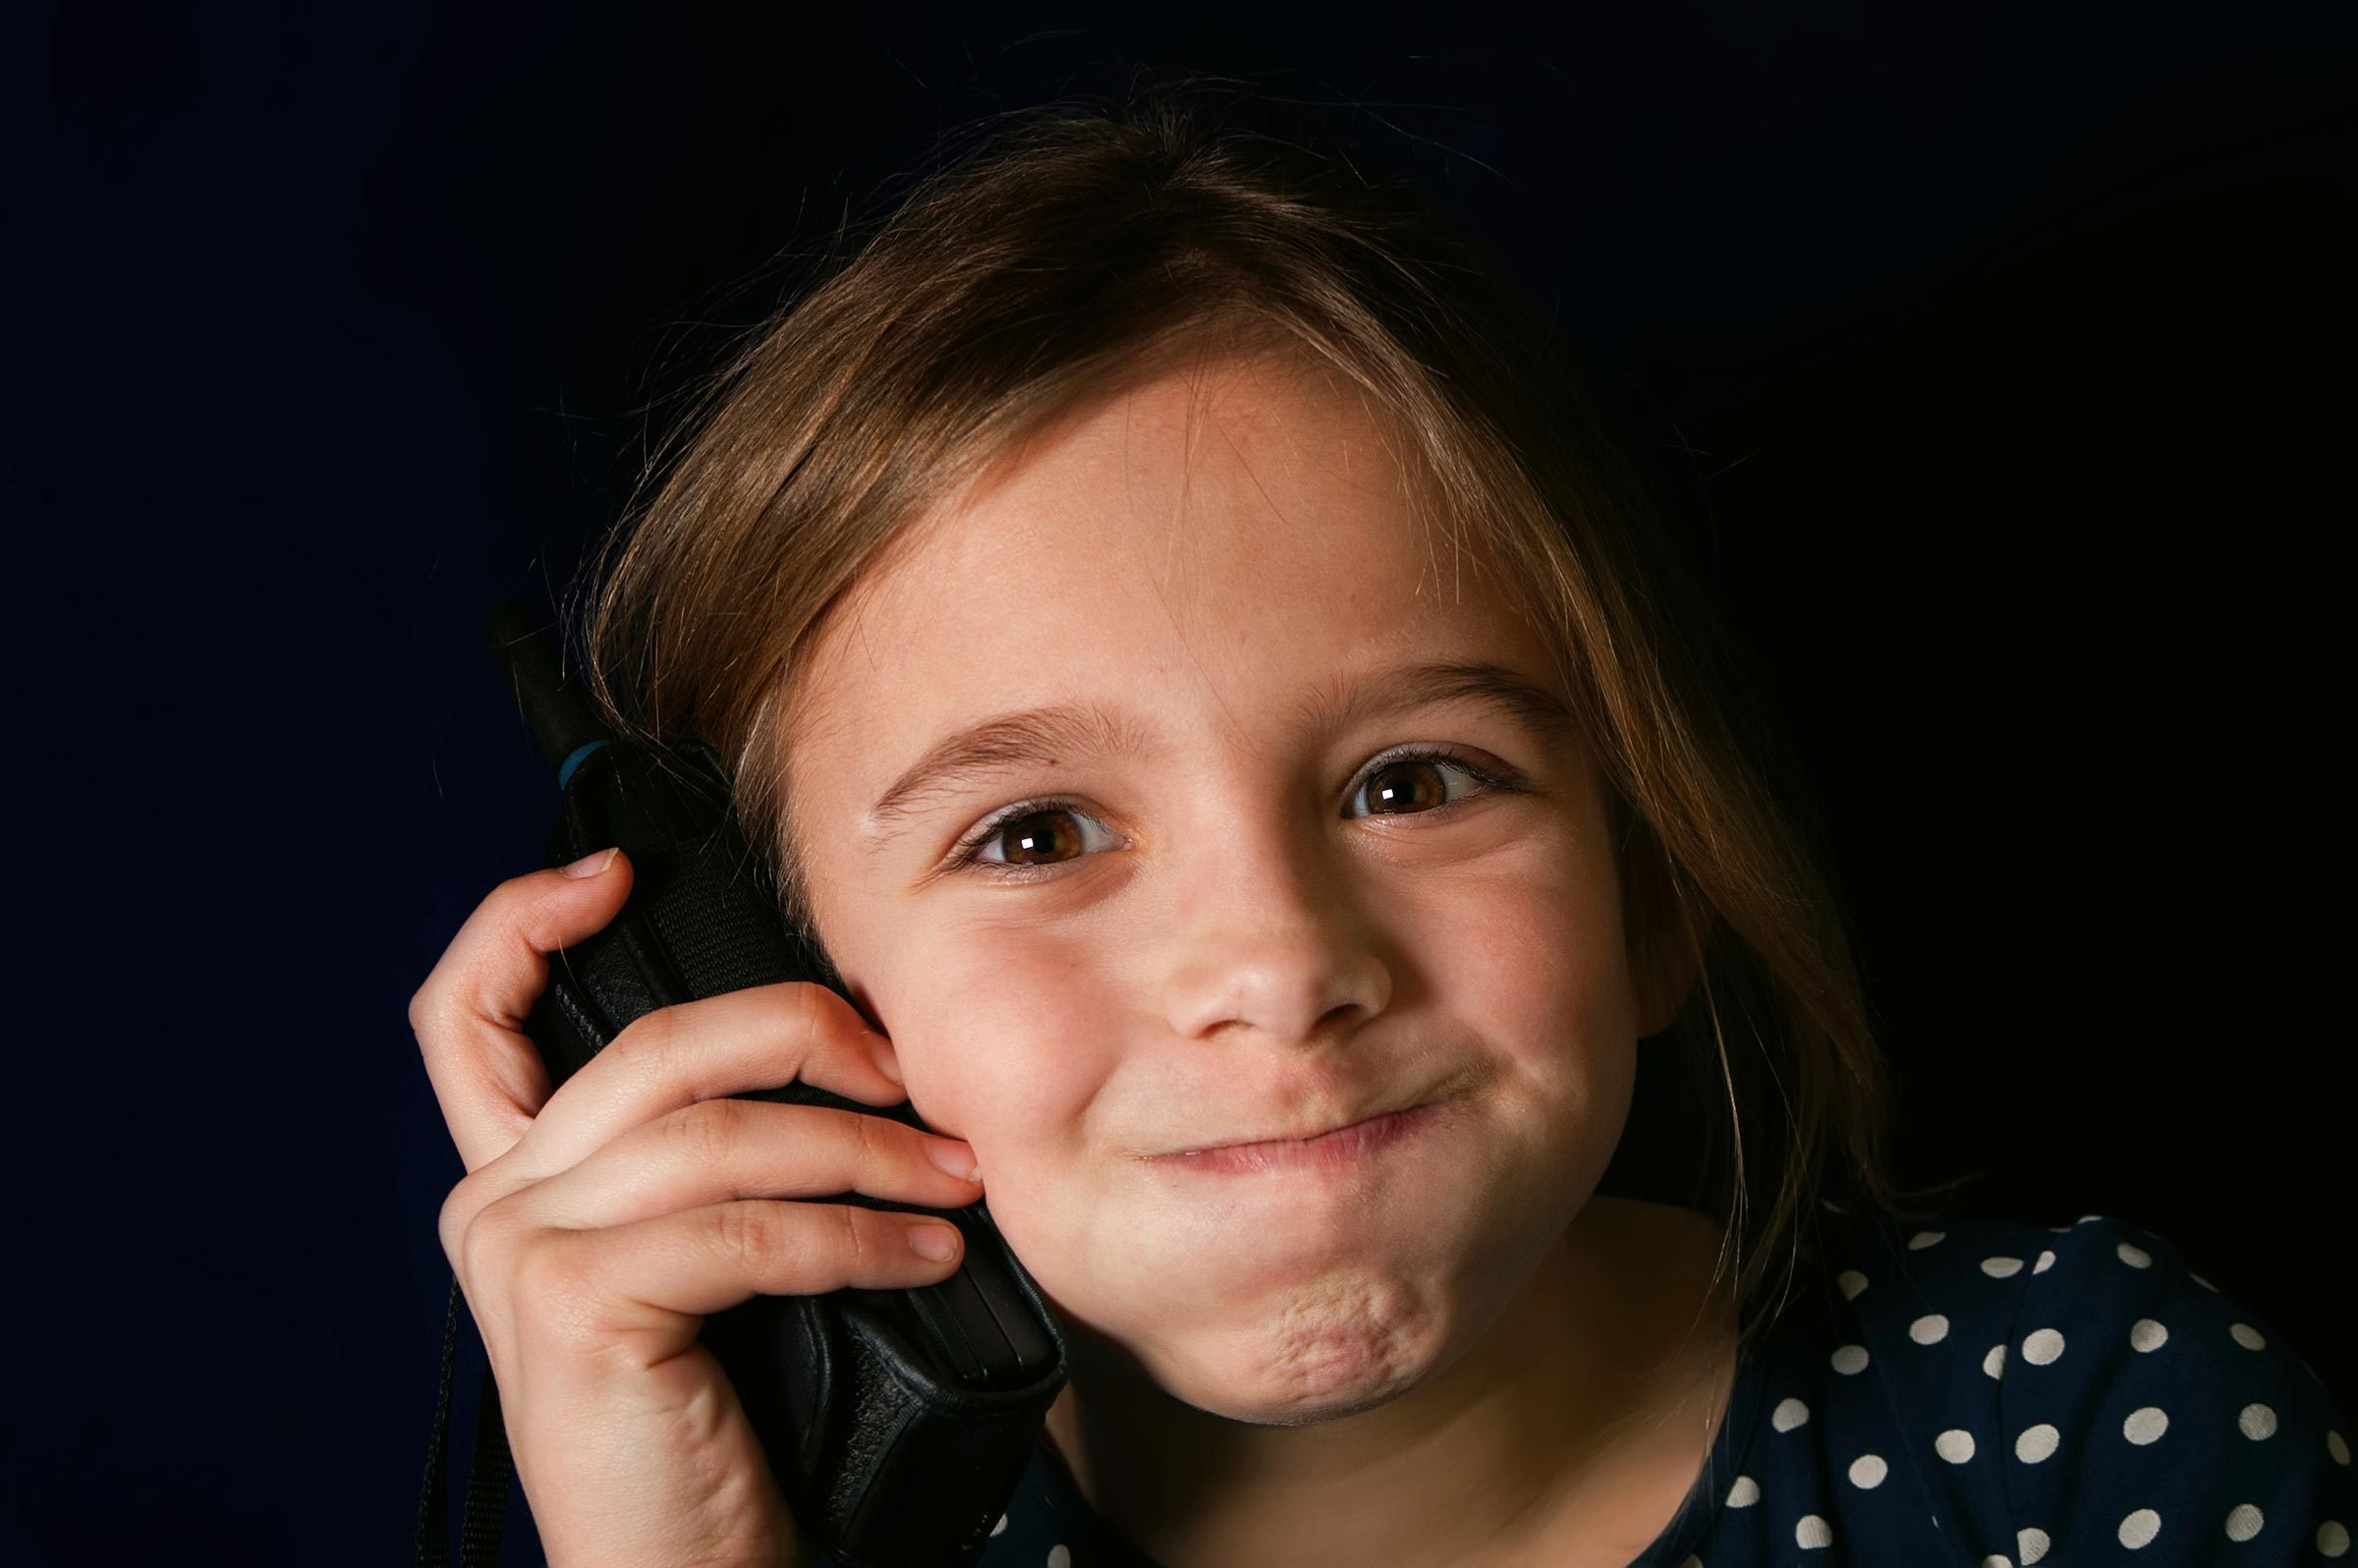 2. We know when kids are prank-calling us.